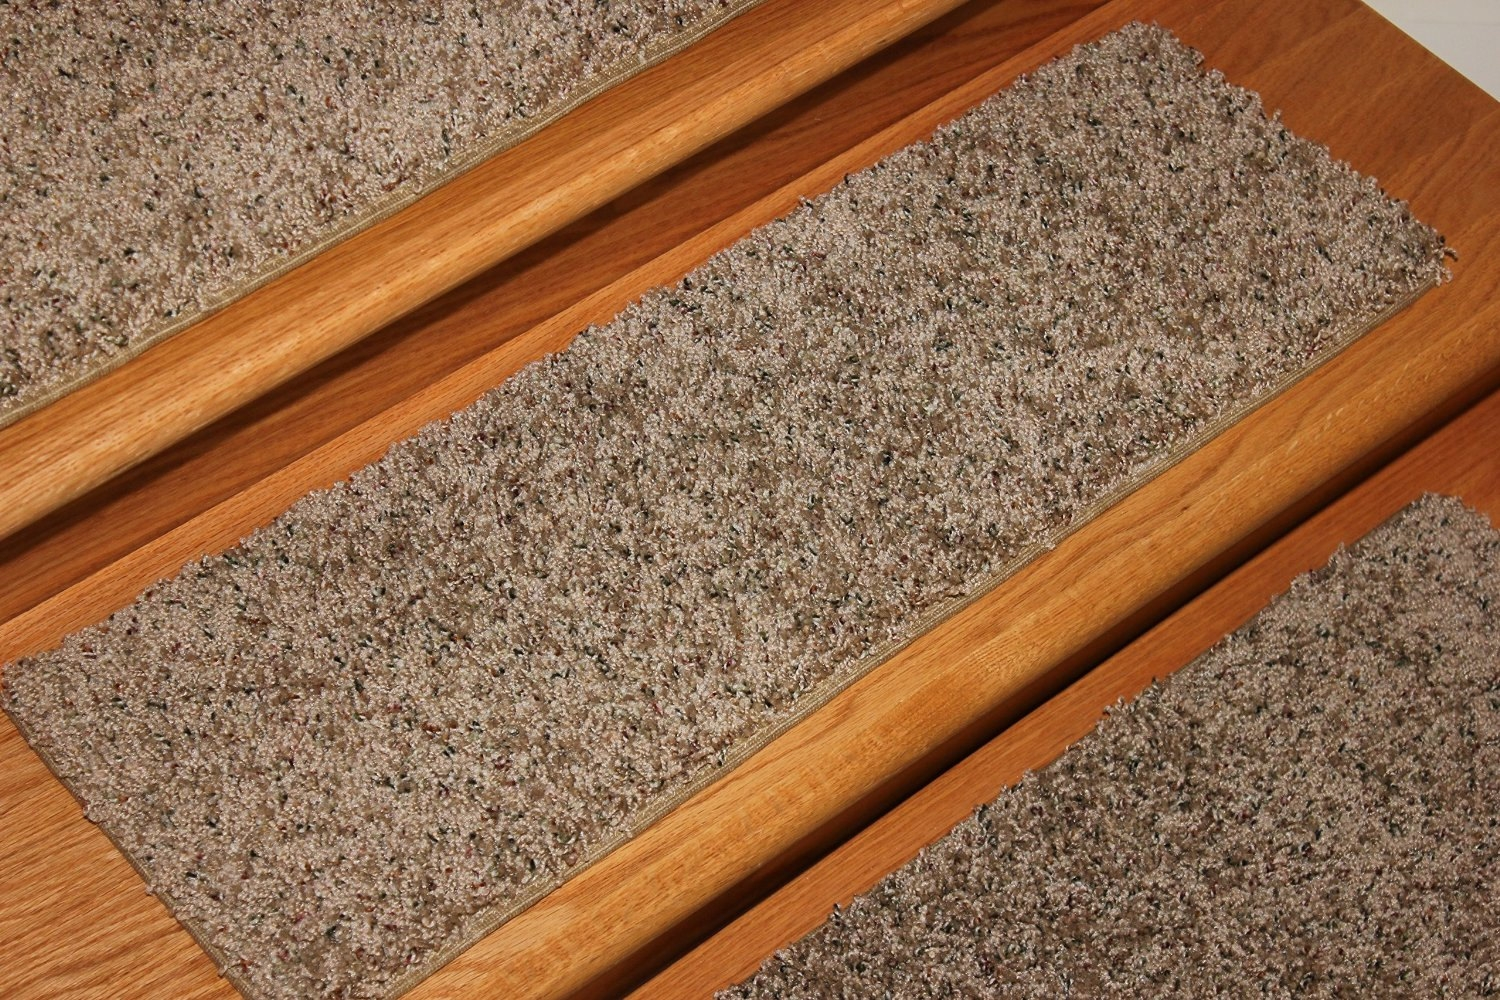 Stair Treads Etsy Regarding Carpet Stair Treads Set Of  (Image 13 of 15)